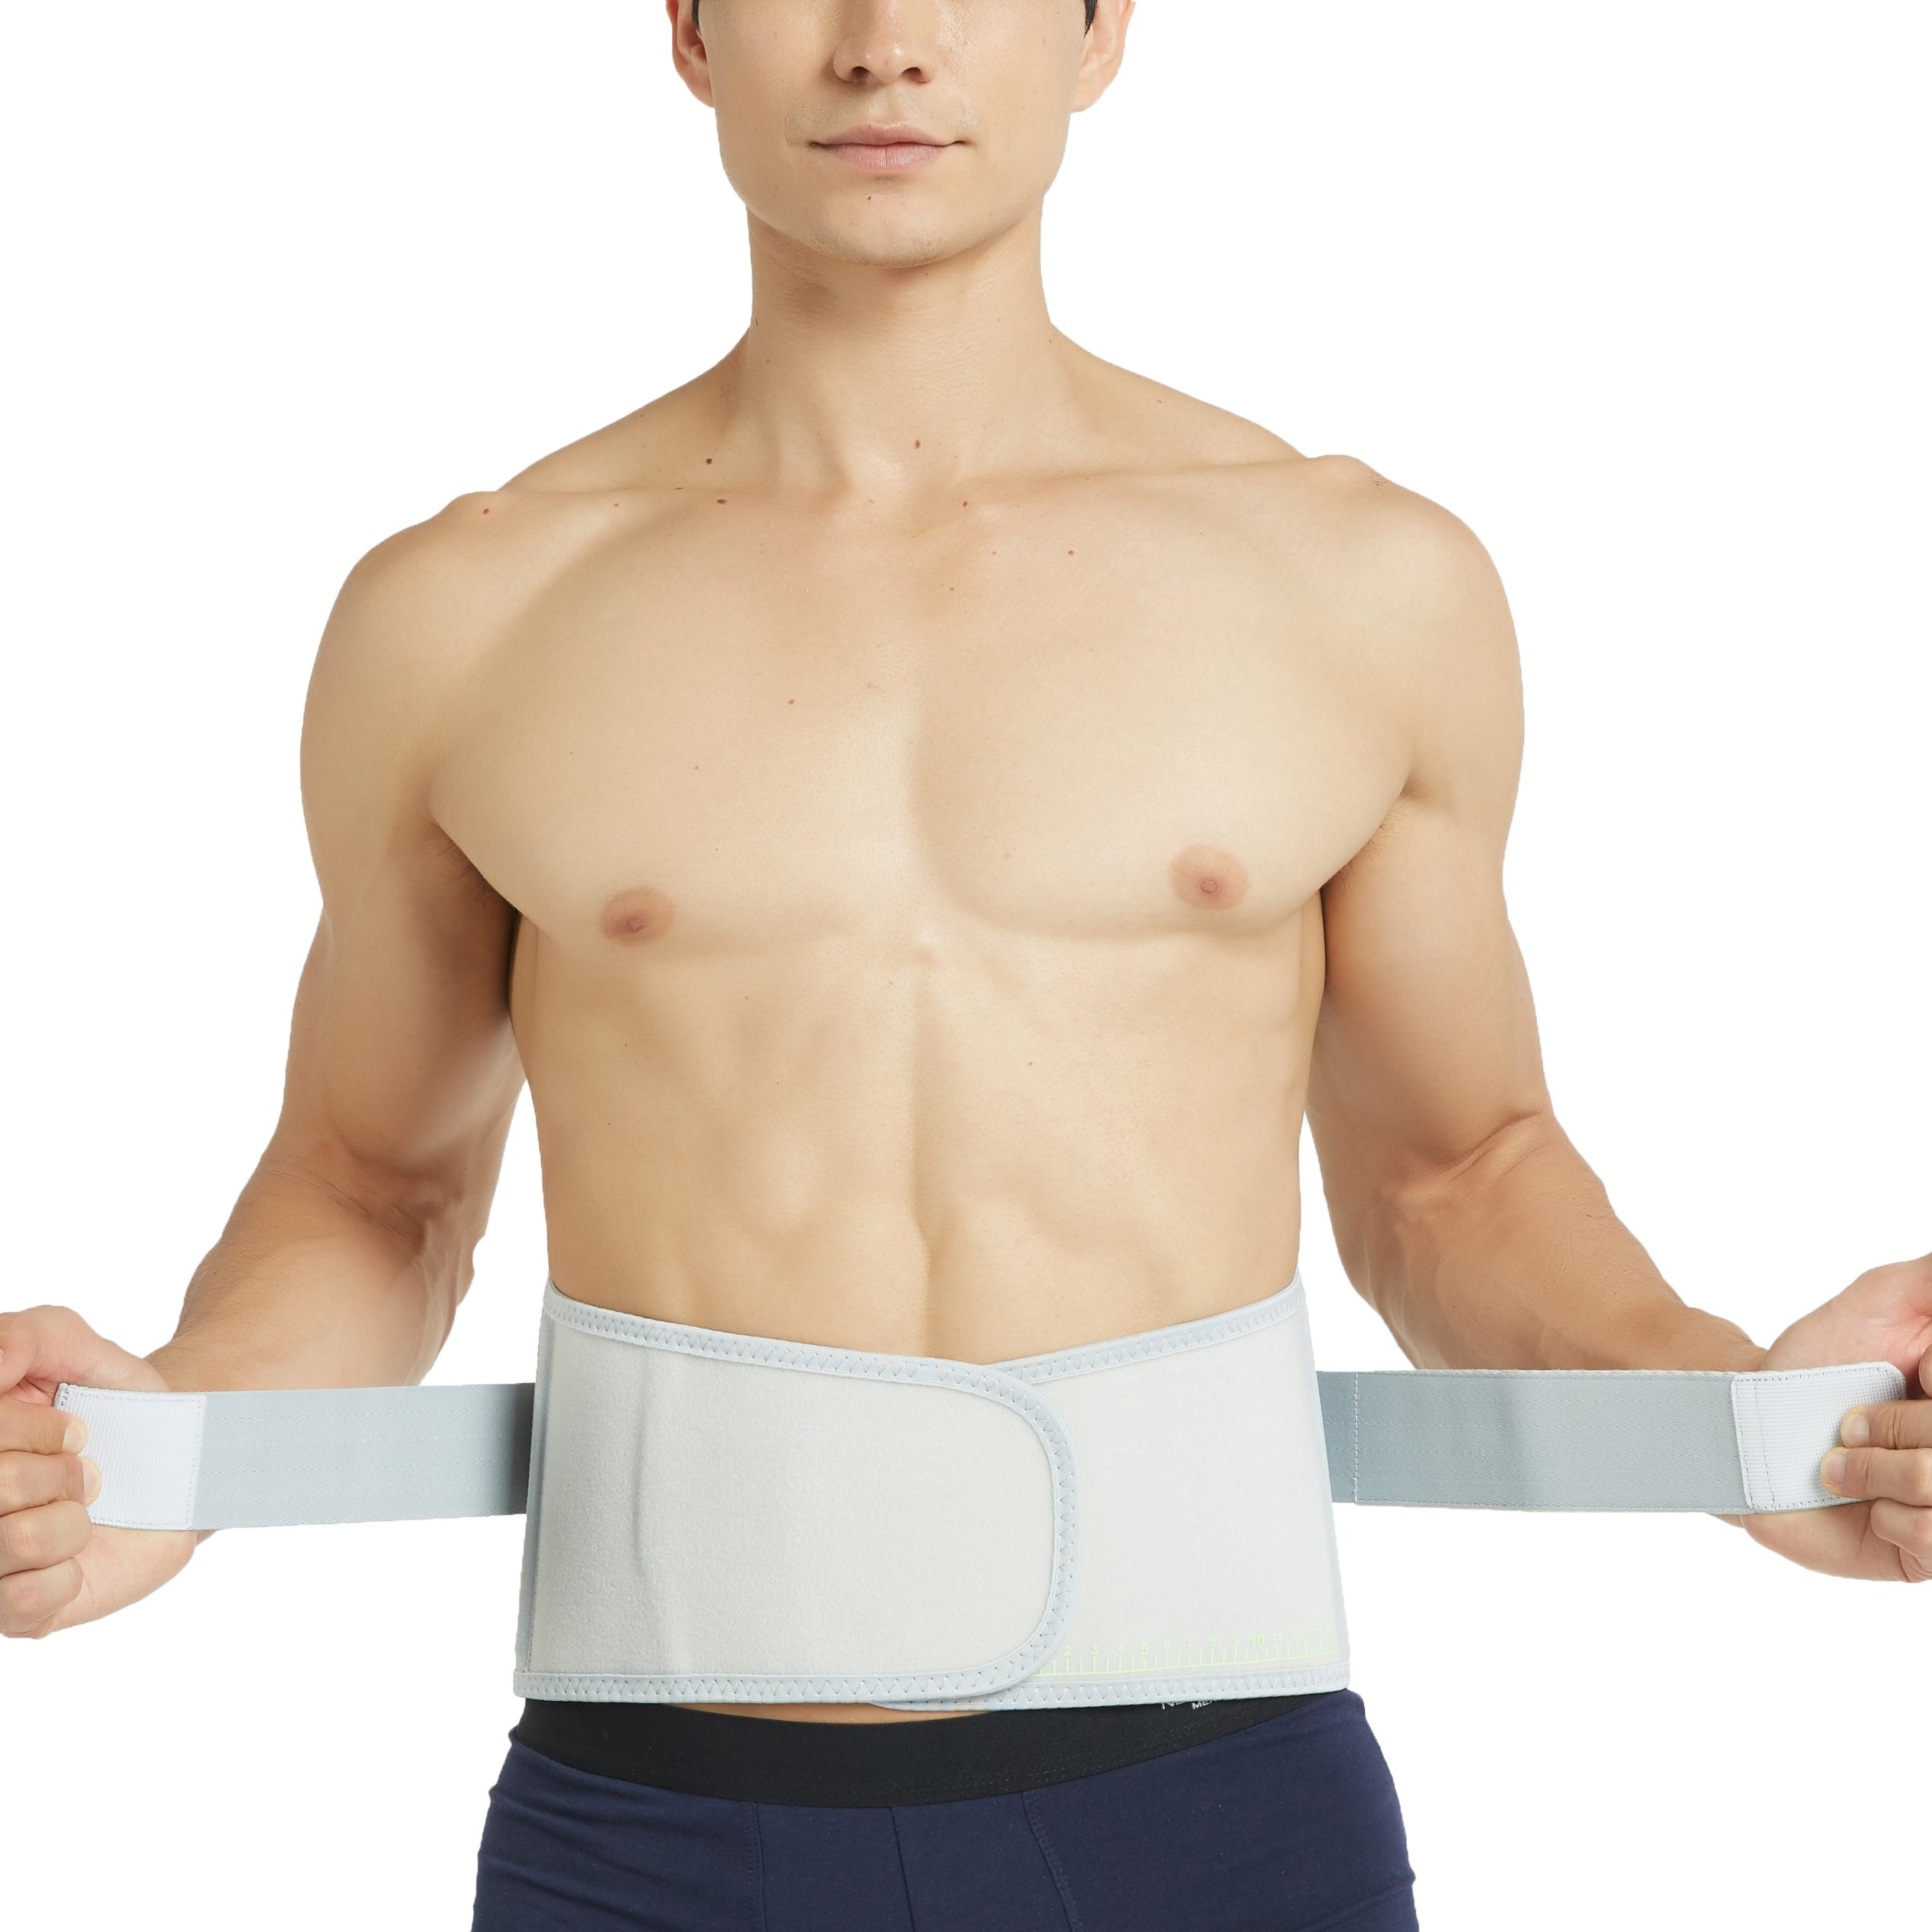 Neotech Care Back Brace - Breathable & Adjustable Support for Lower Back Pain - Double Pulley Compression Straps Lumbar Belt Corset - Grey - Size S